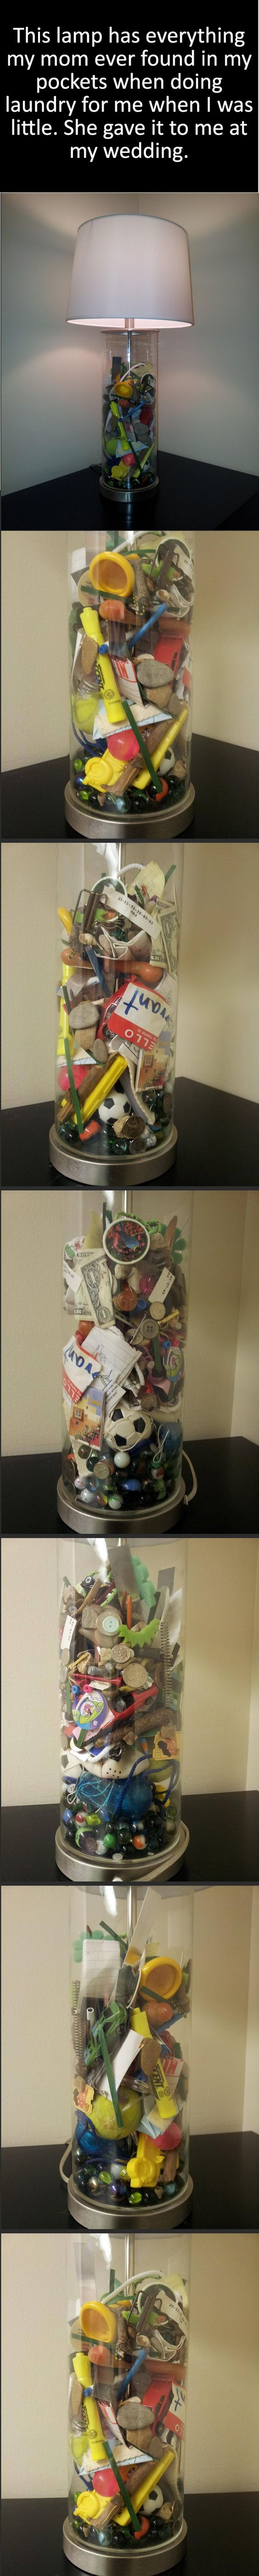 A mother saved all the things she found on his son pockets when doing the laundry. She gave him this lamp with all things found for his wedding.  Cute idea. I could see maybe doing a shadow box or something.   # Pin++ for Pinterest #